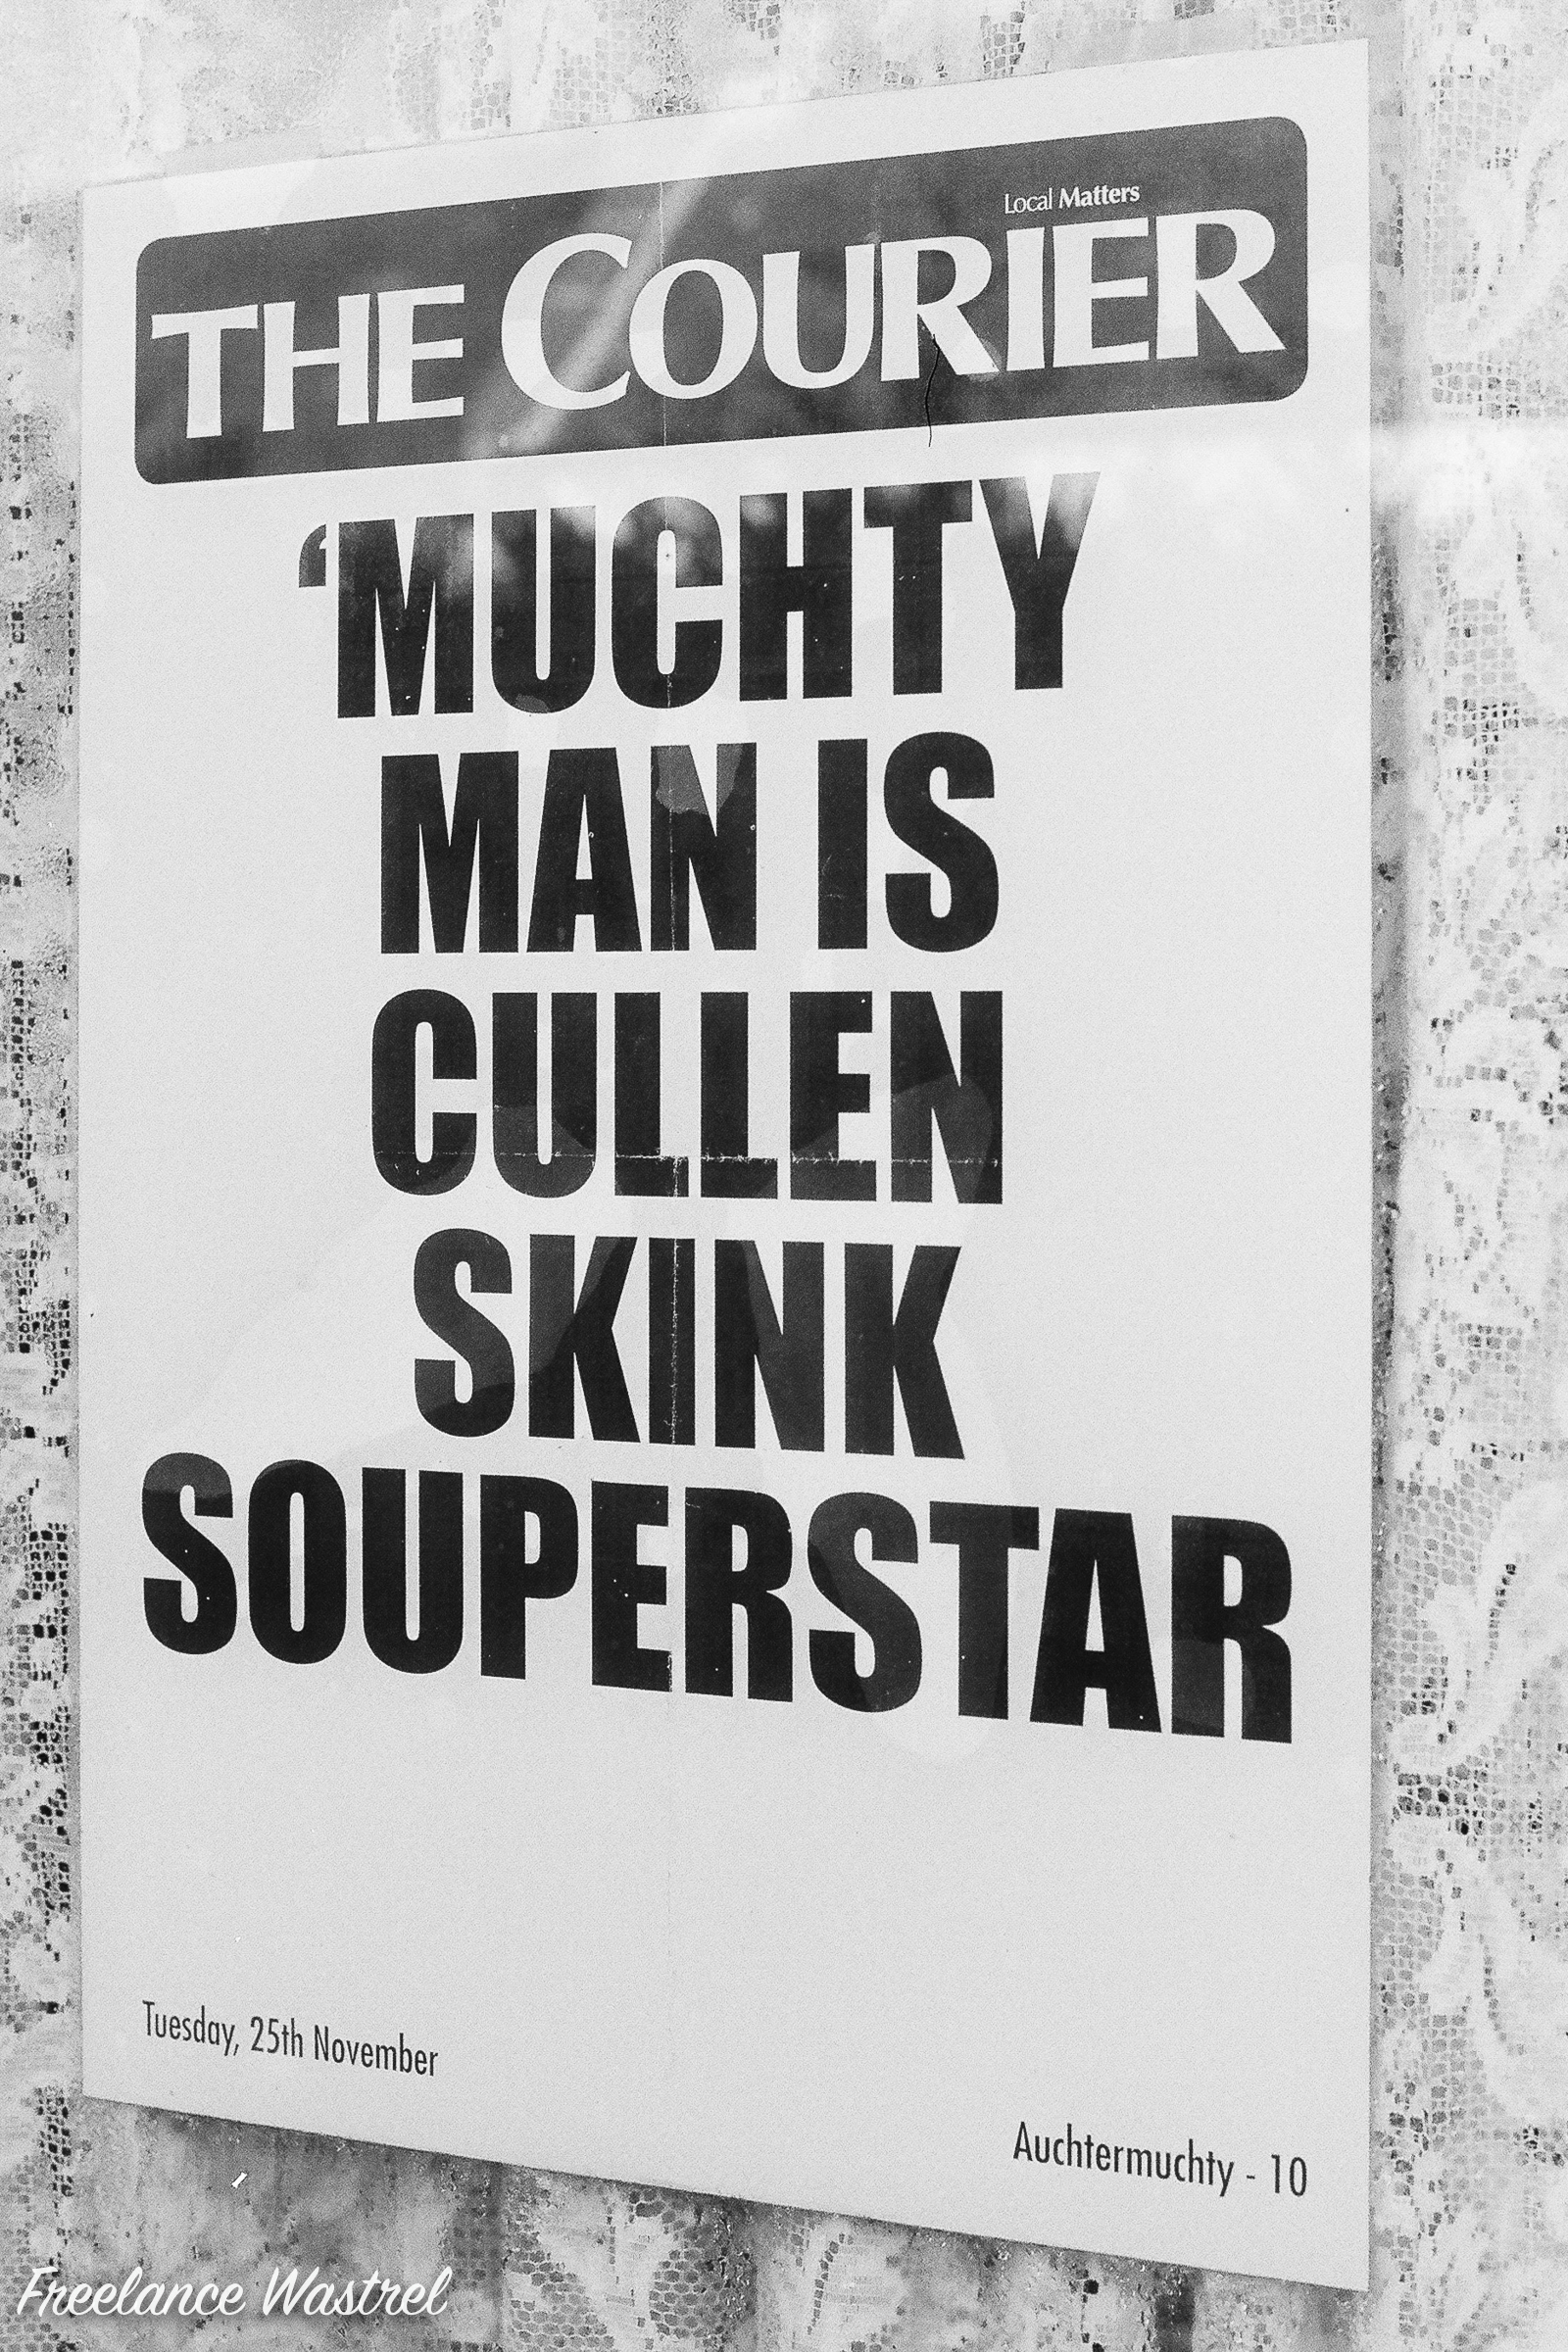 Muchty Man is Cullen Skink Souperstar